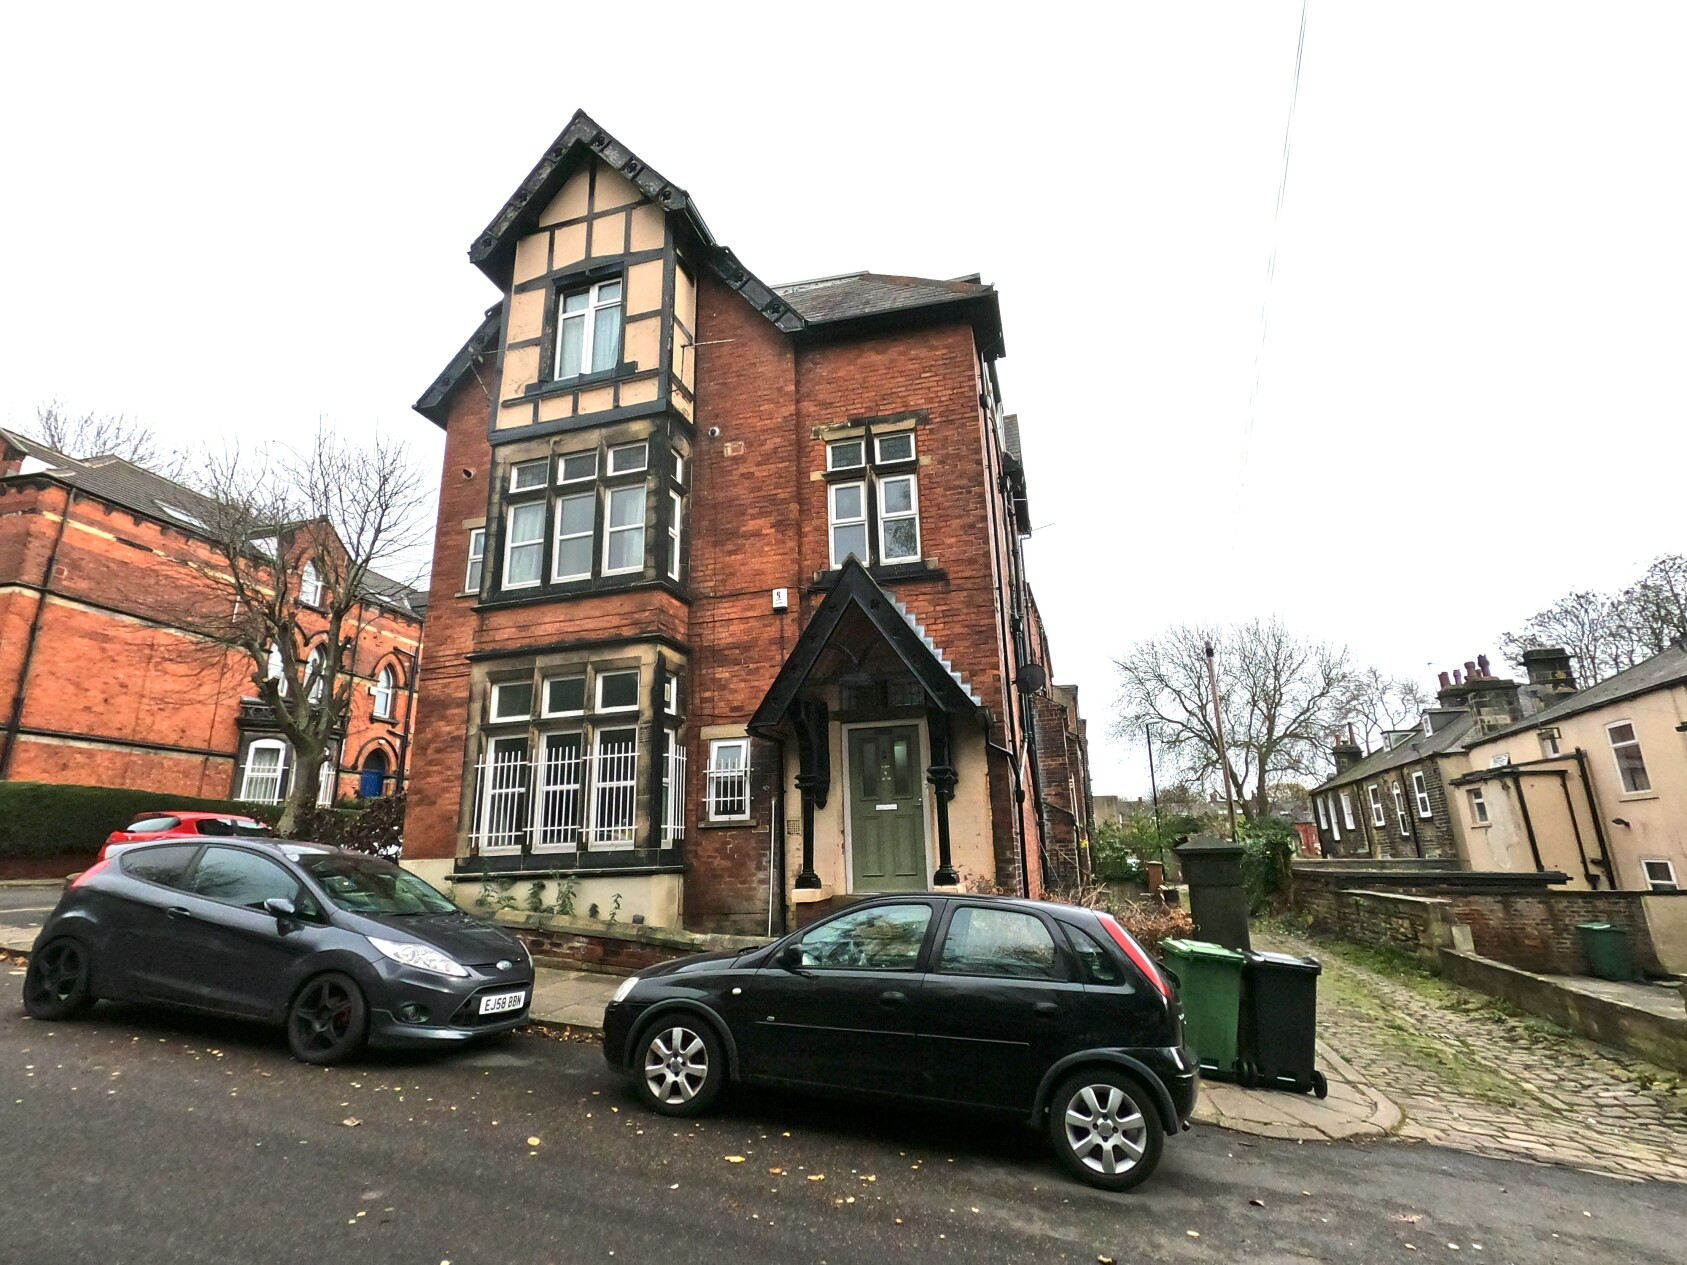 11 bedroom student house in Hyde Park, Leeds